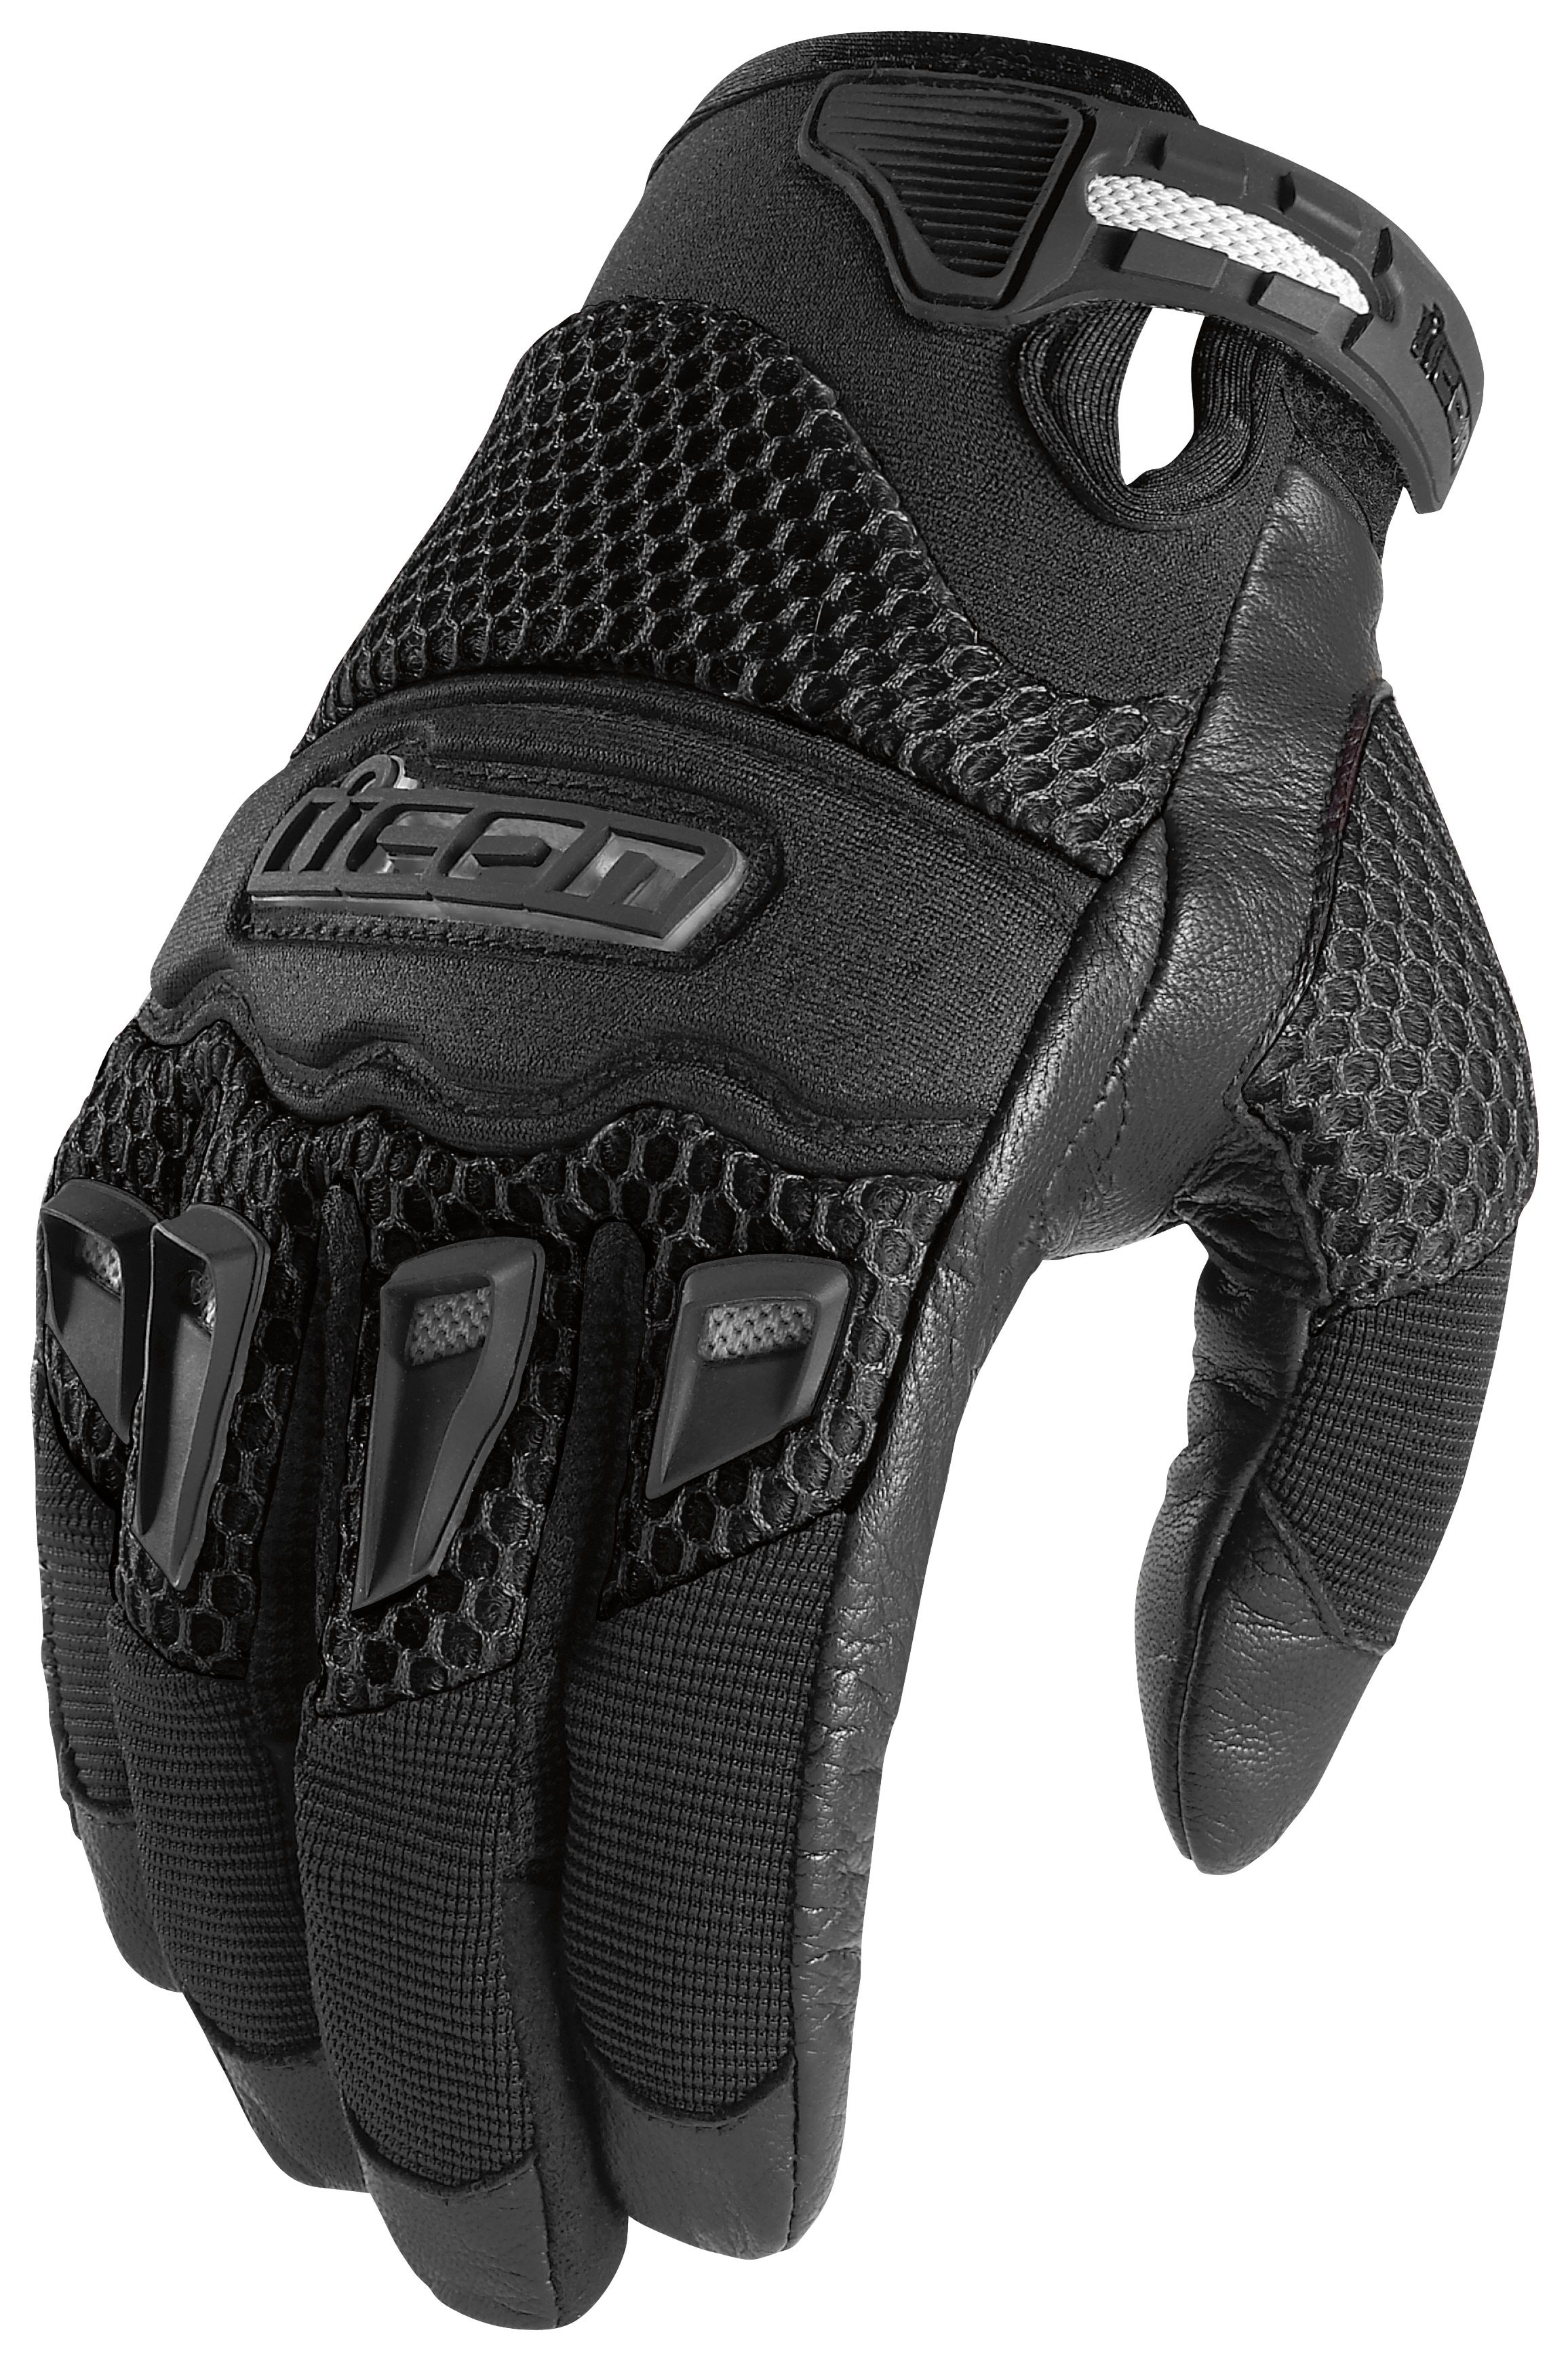 Motorcycle gloves mesh - Motorcycle Gloves Mesh 19